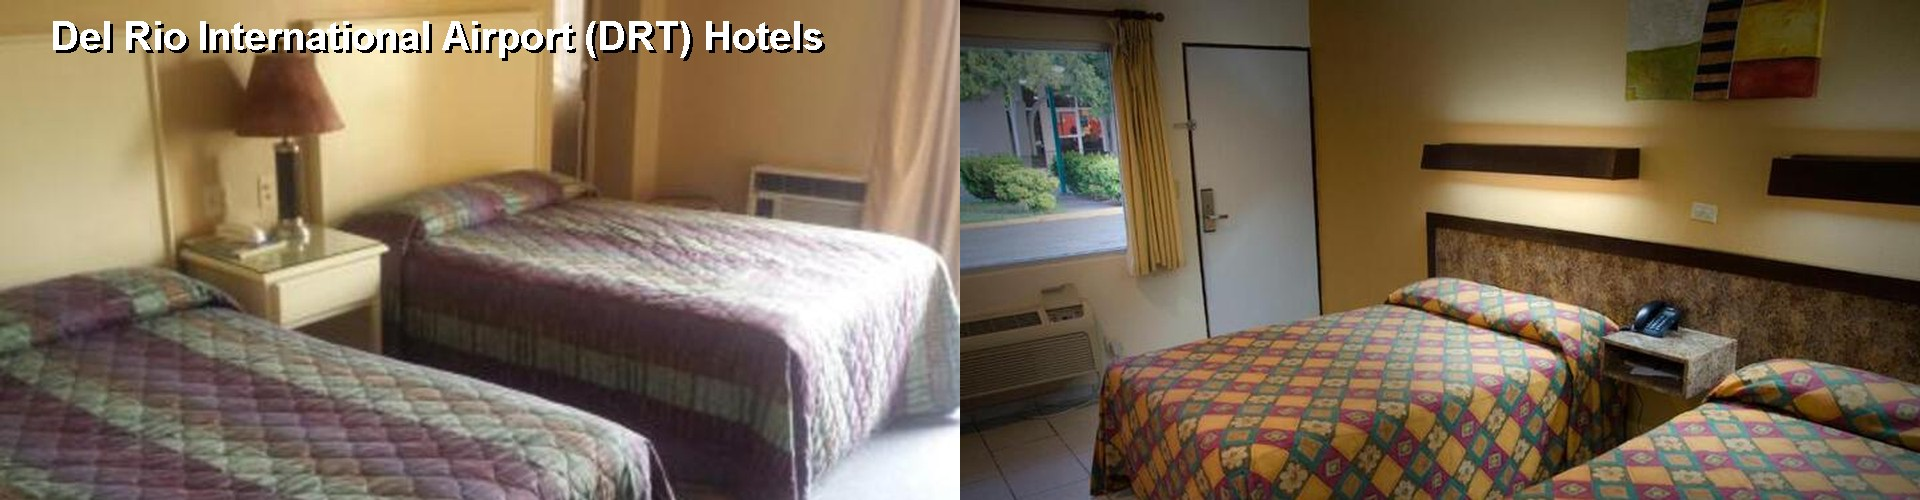 5 Best Hotels near Del Rio International Airport (DRT)